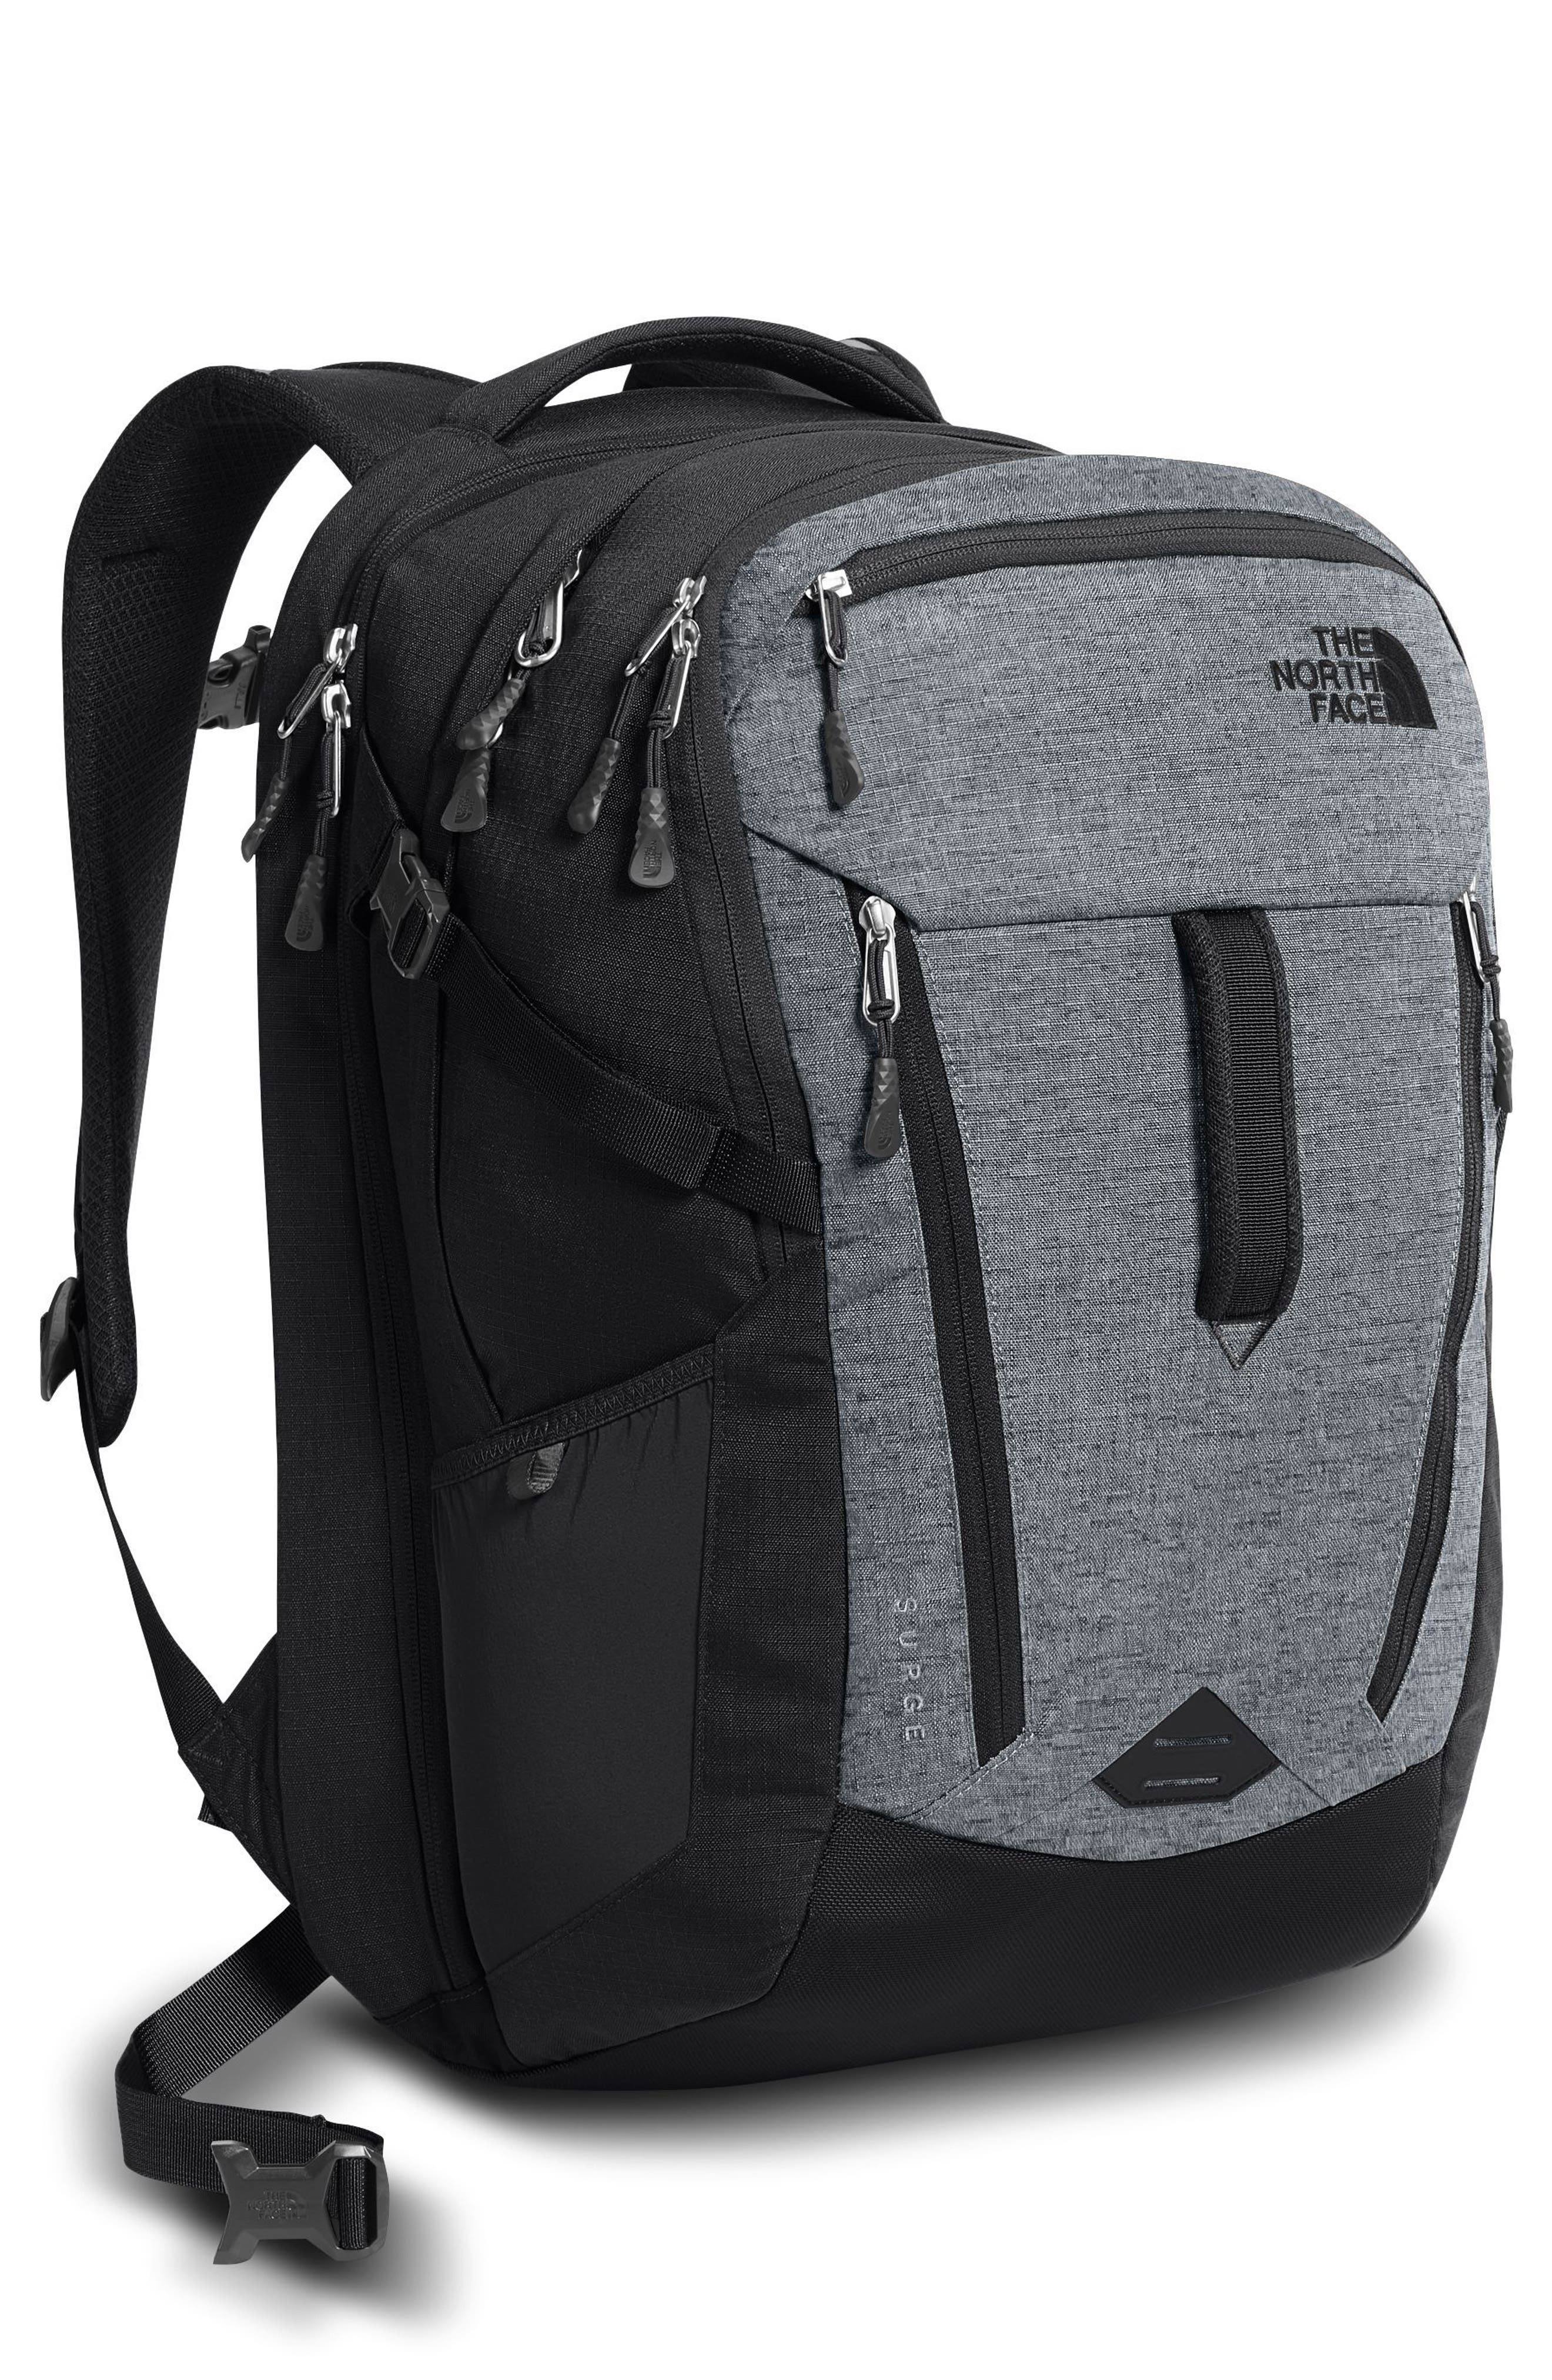 Main Image - The North Face 'Surge' Backpack